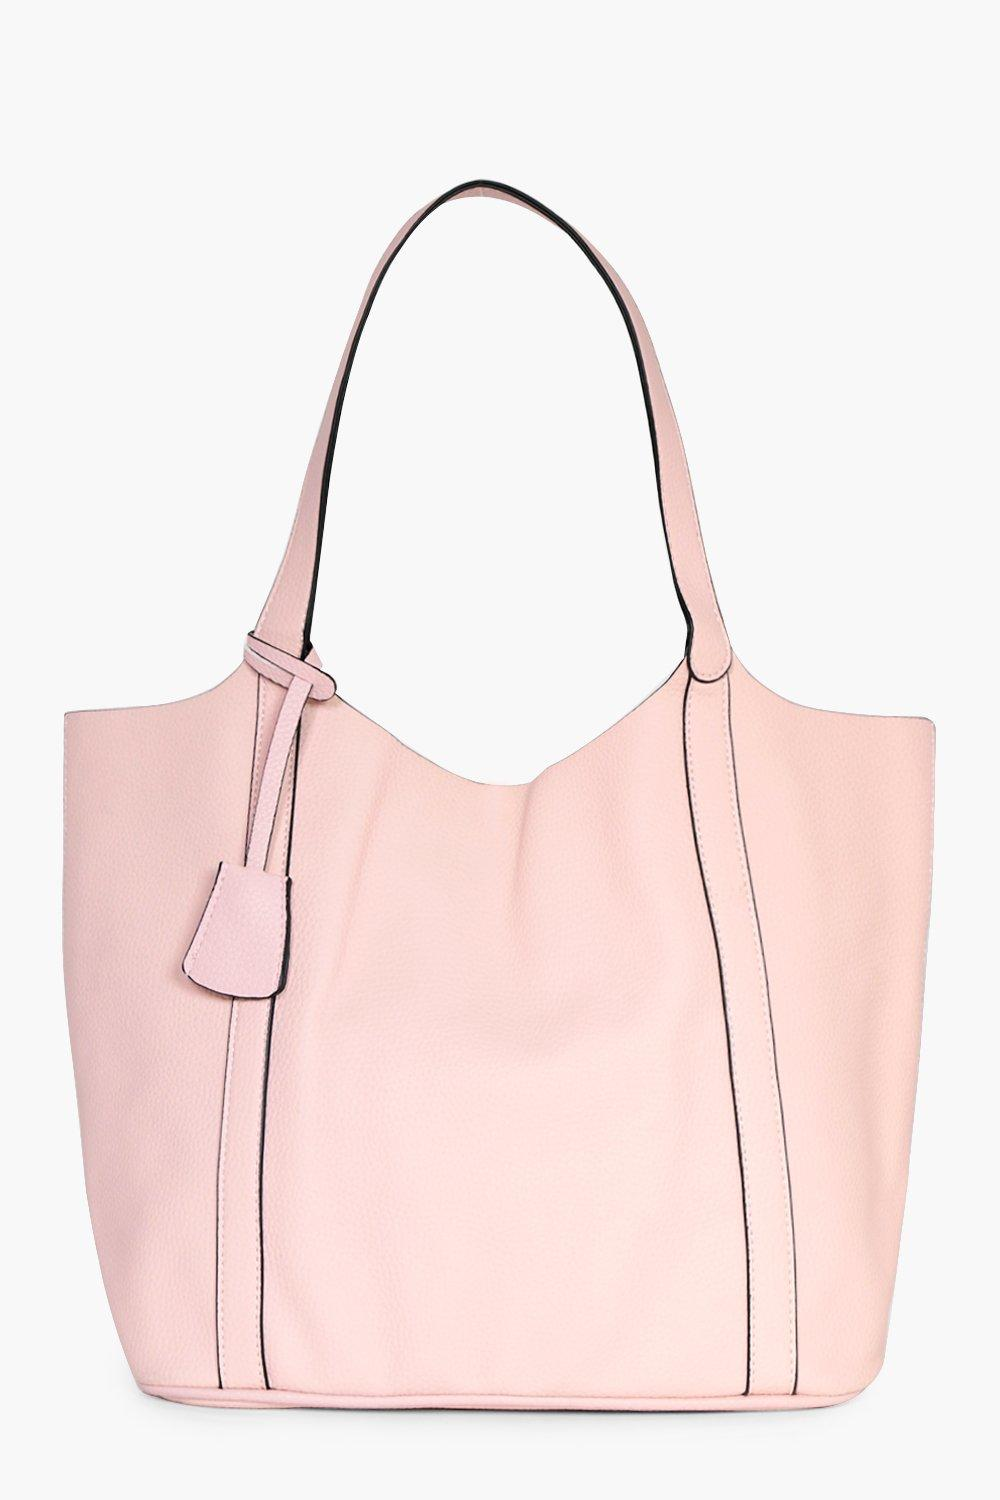 Panel Unlined Oversize Shopper Bag - blush - Mae P